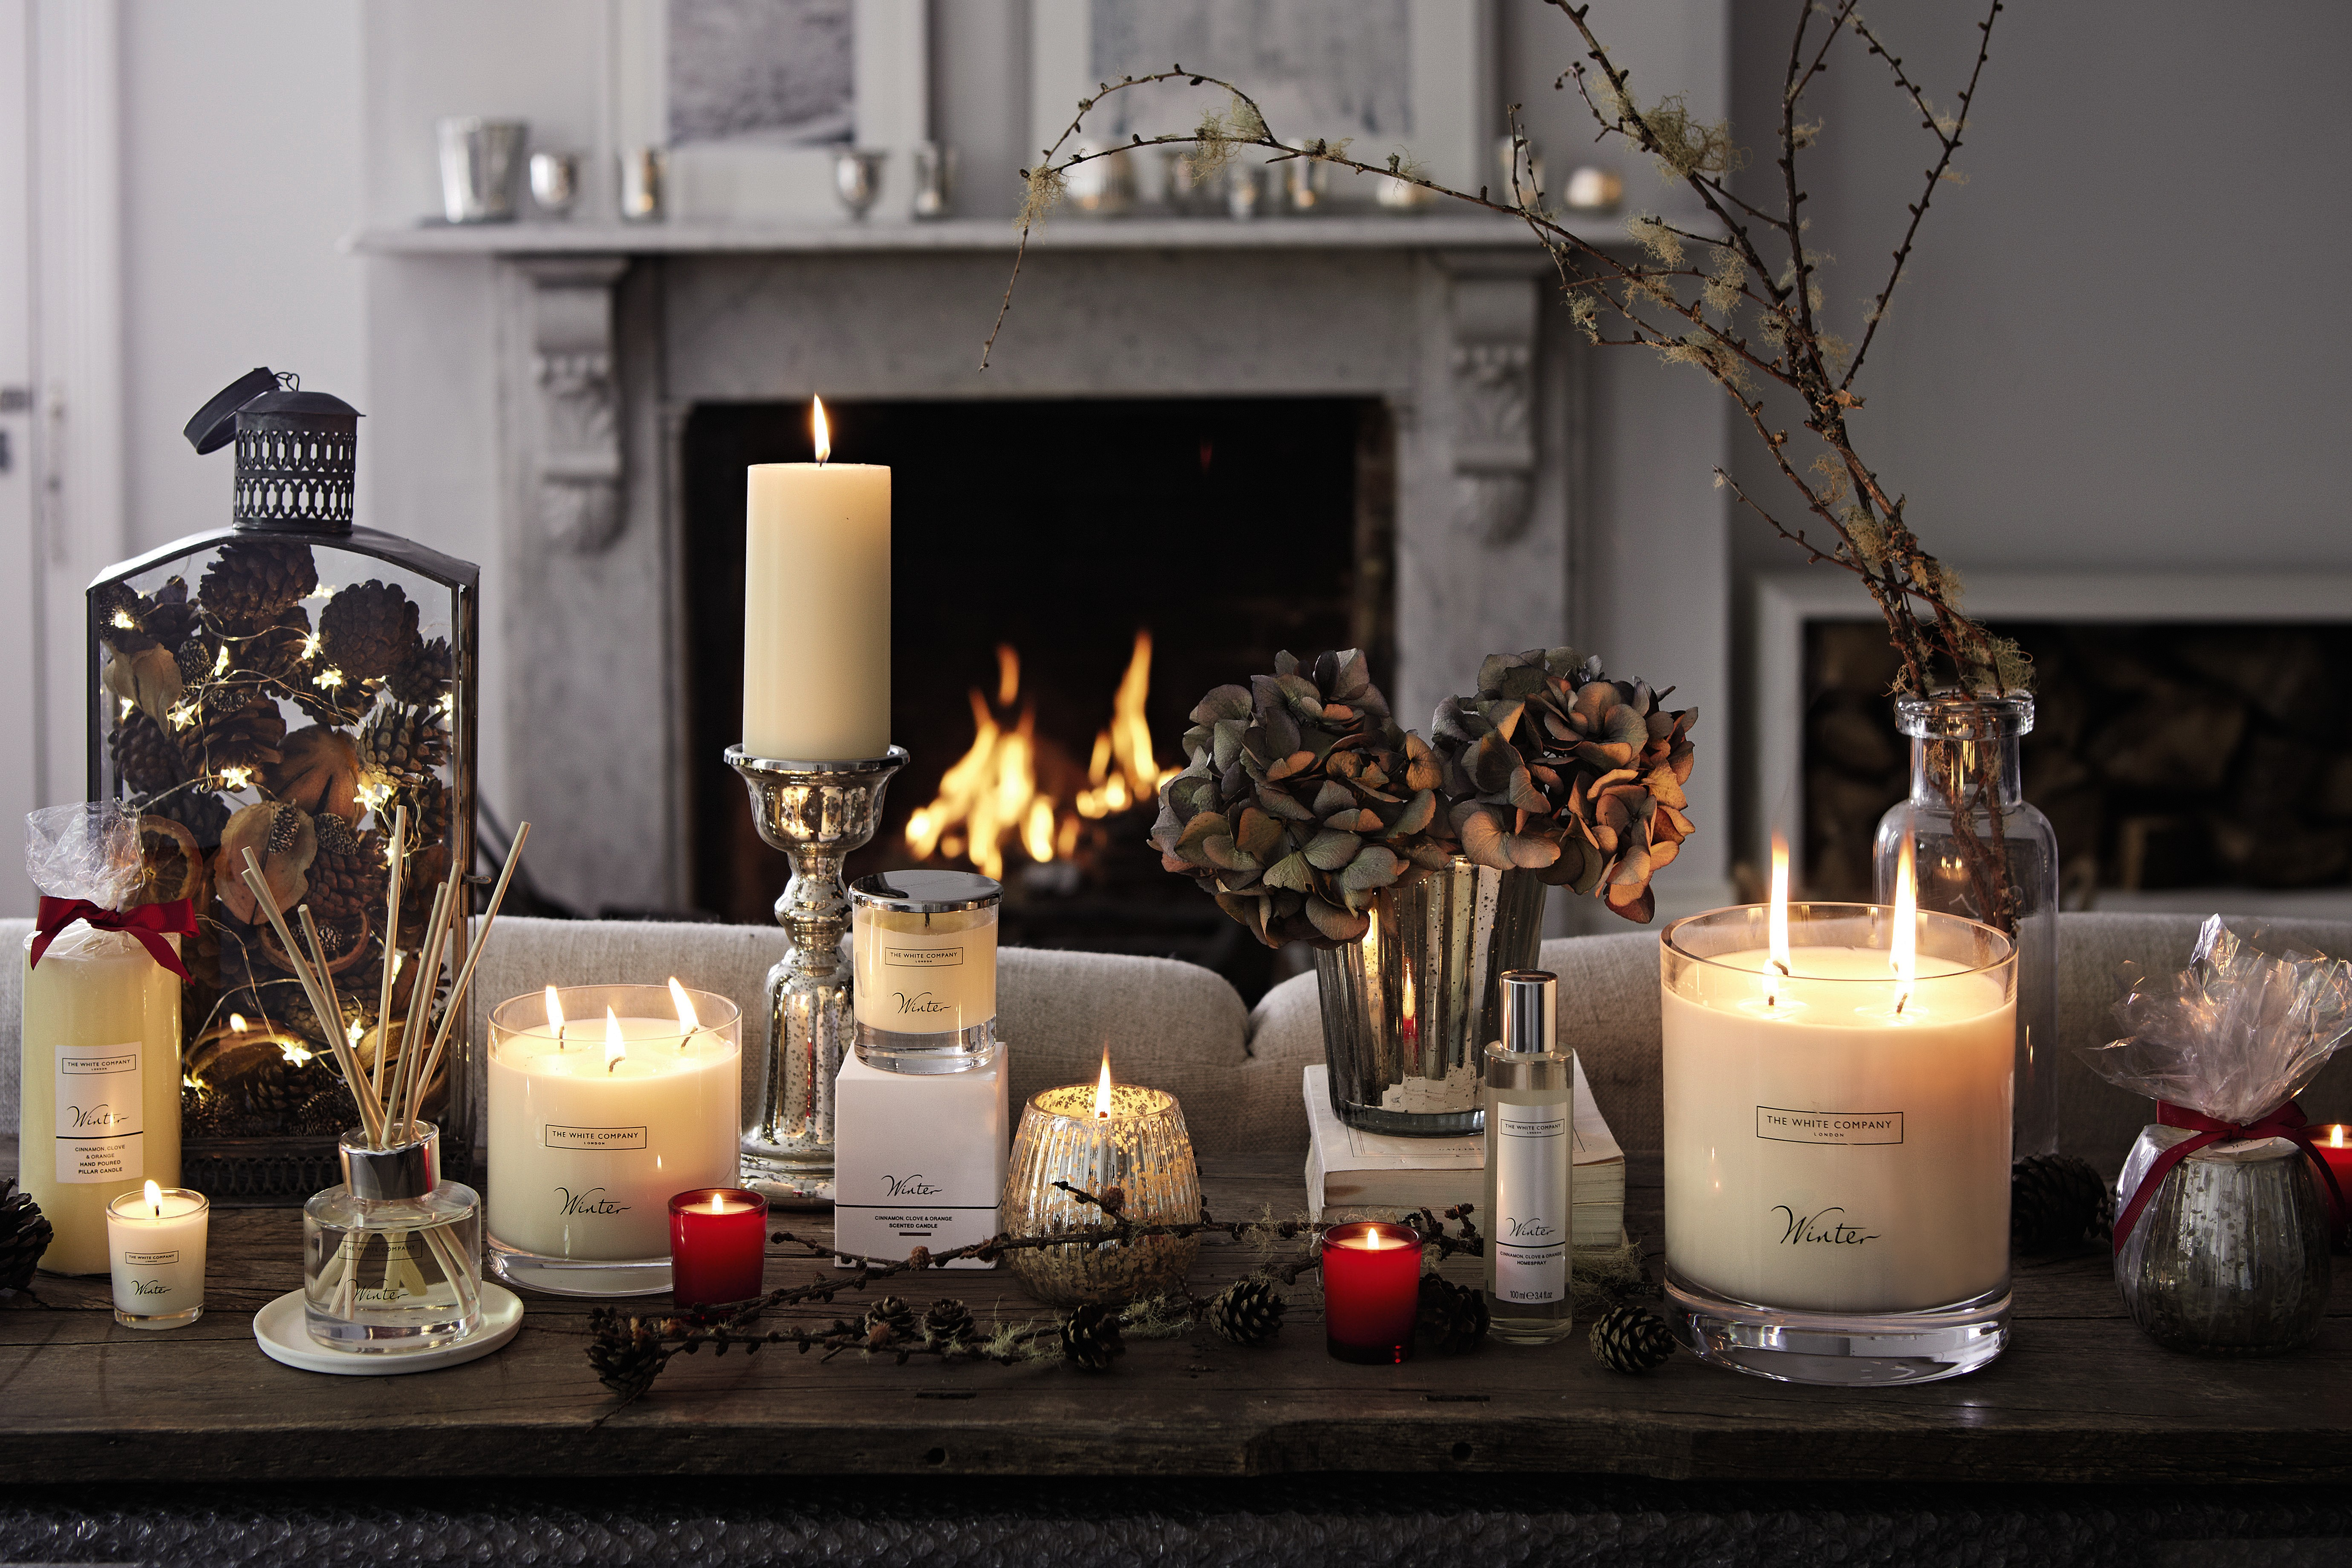 Candles in winter photo